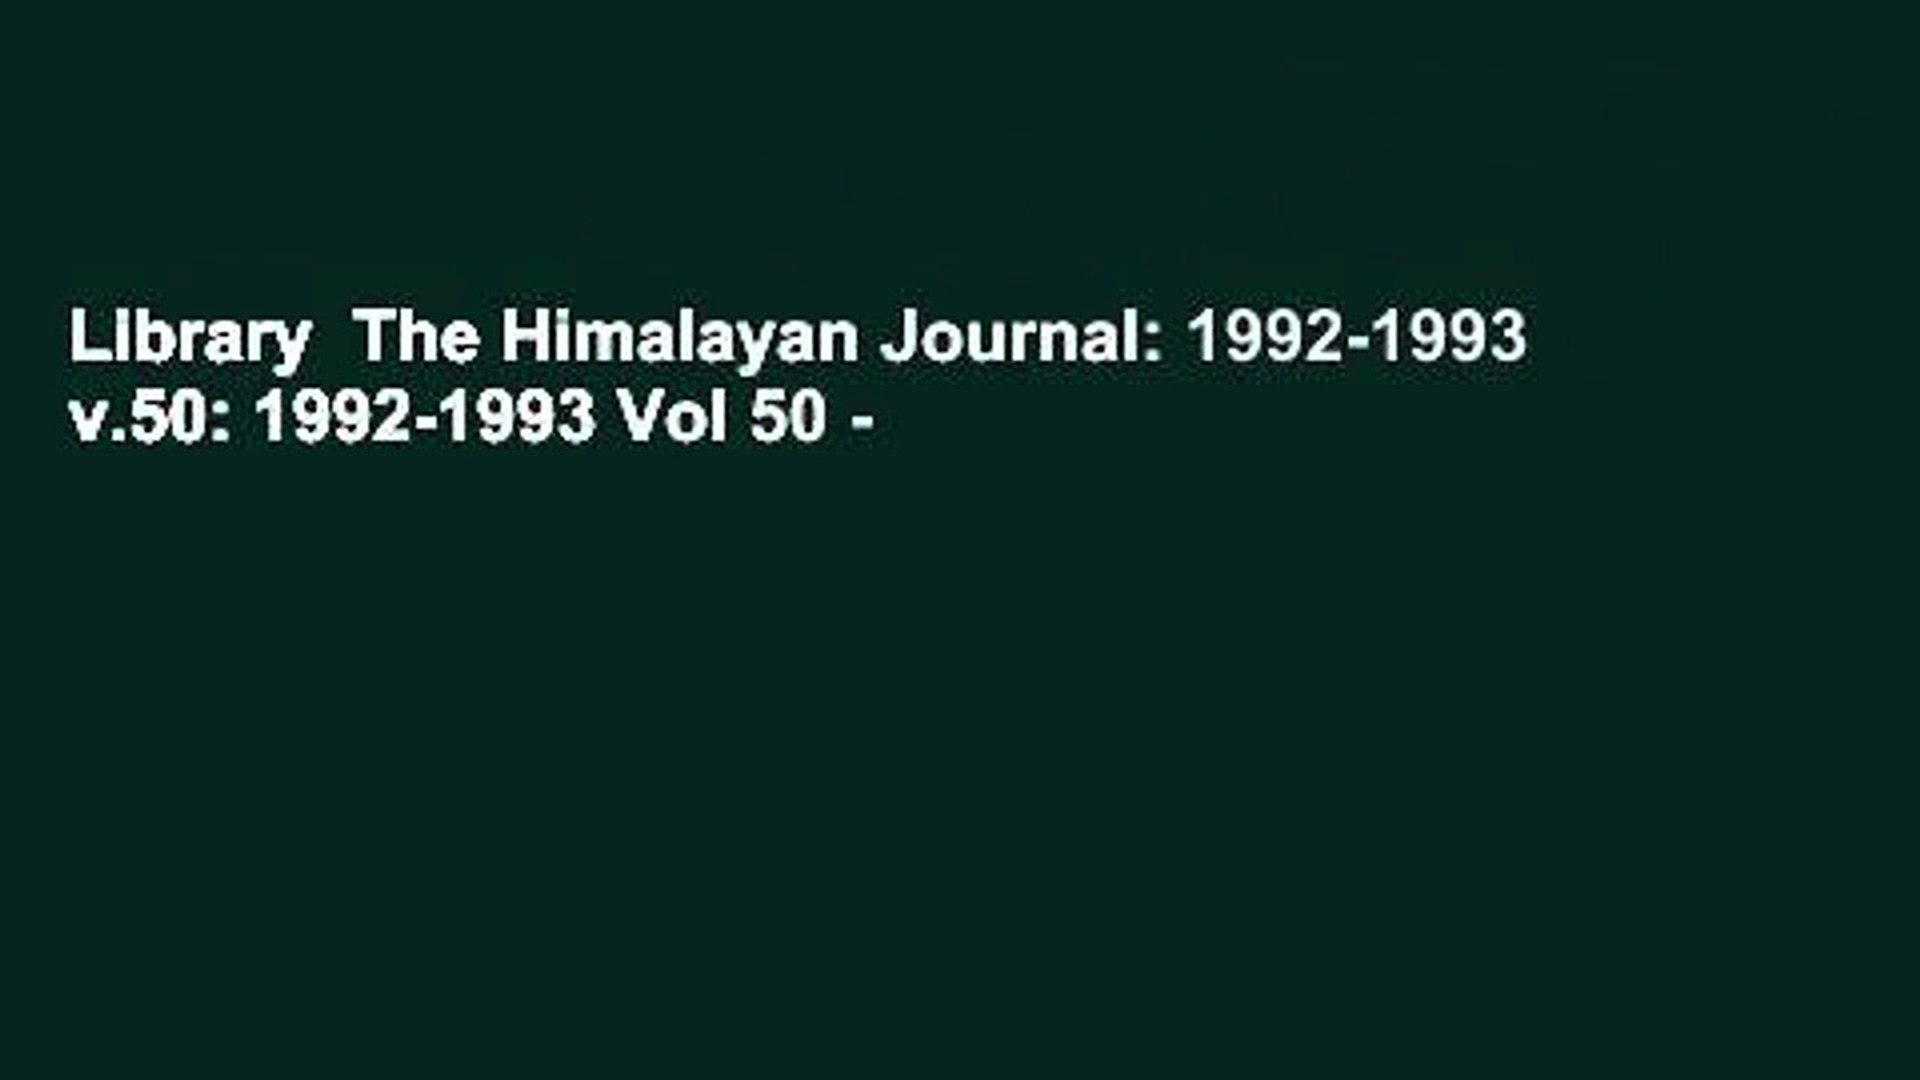 Library  The Himalayan Journal: 1992-1993 v.50: 1992-1993 Vol 50 -